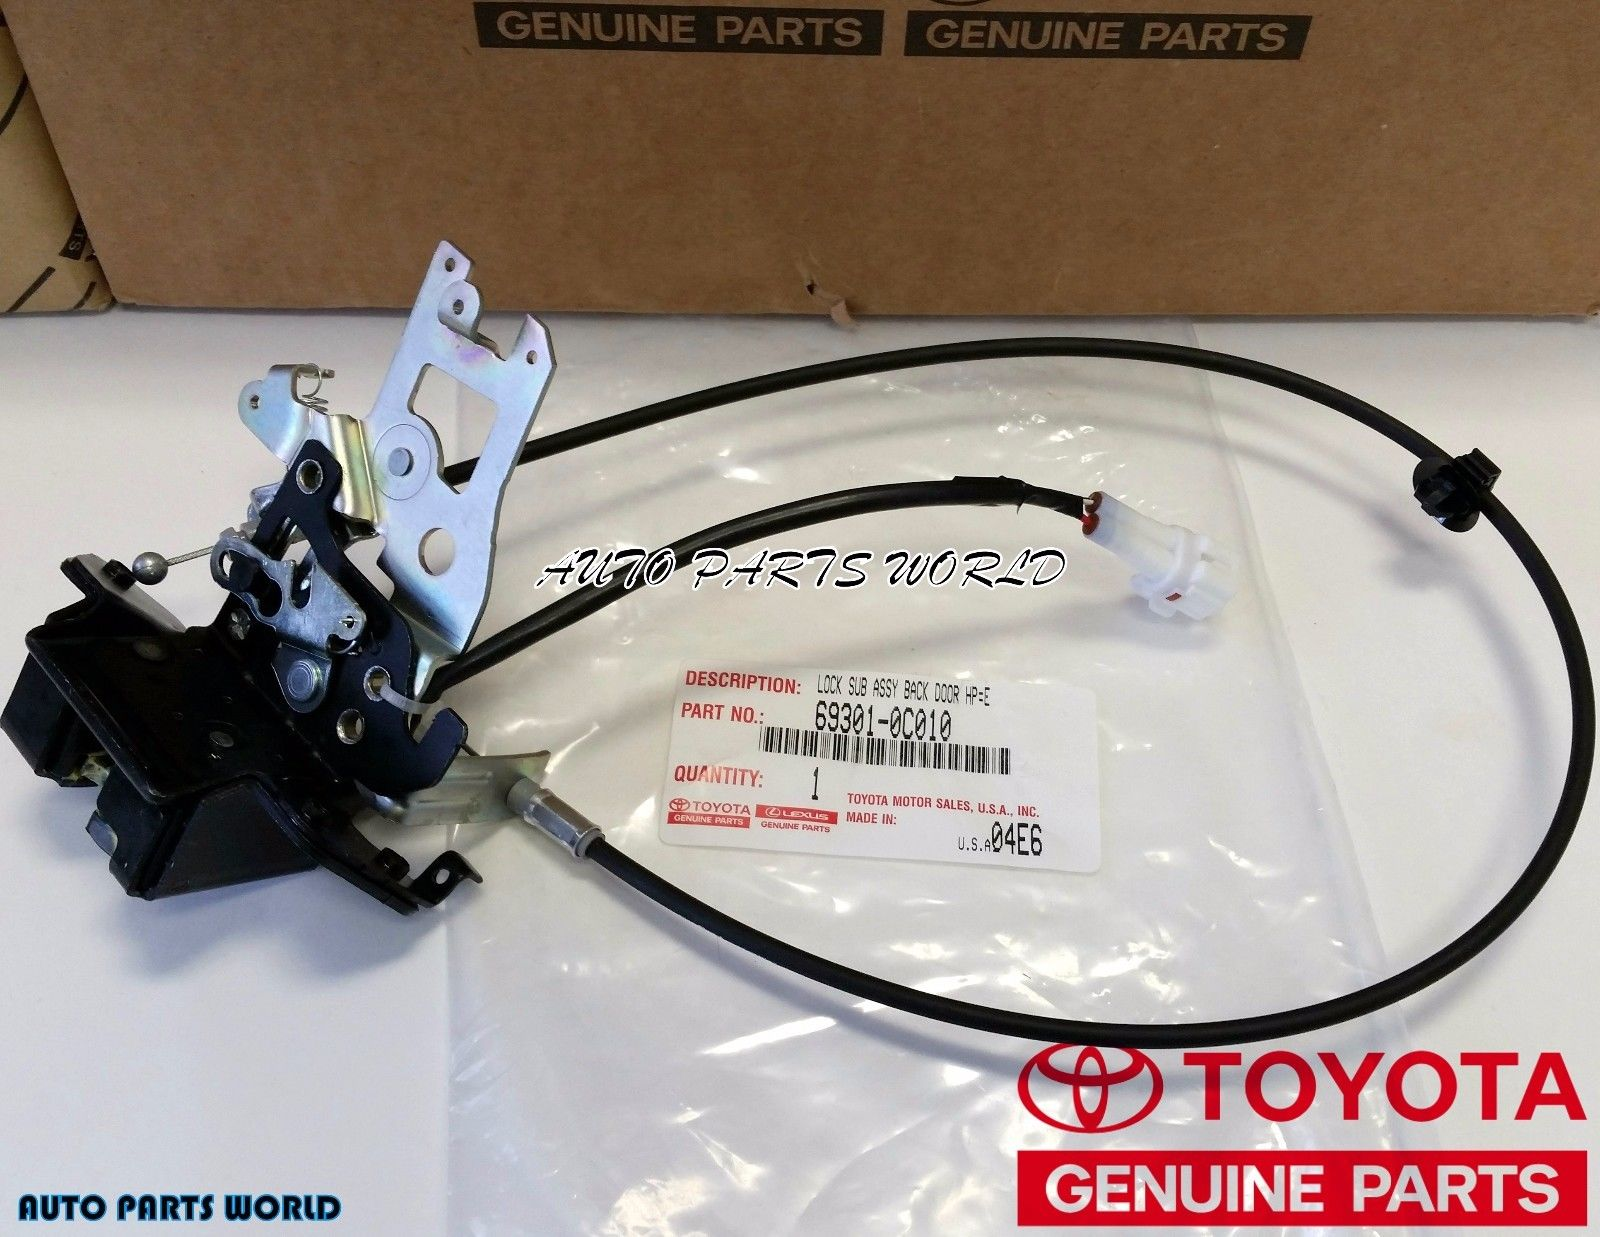 Amazing New Toyota Oem 2001 2007 Sequoia Rear Tailgate Lift Gate Lifted Item Specifics